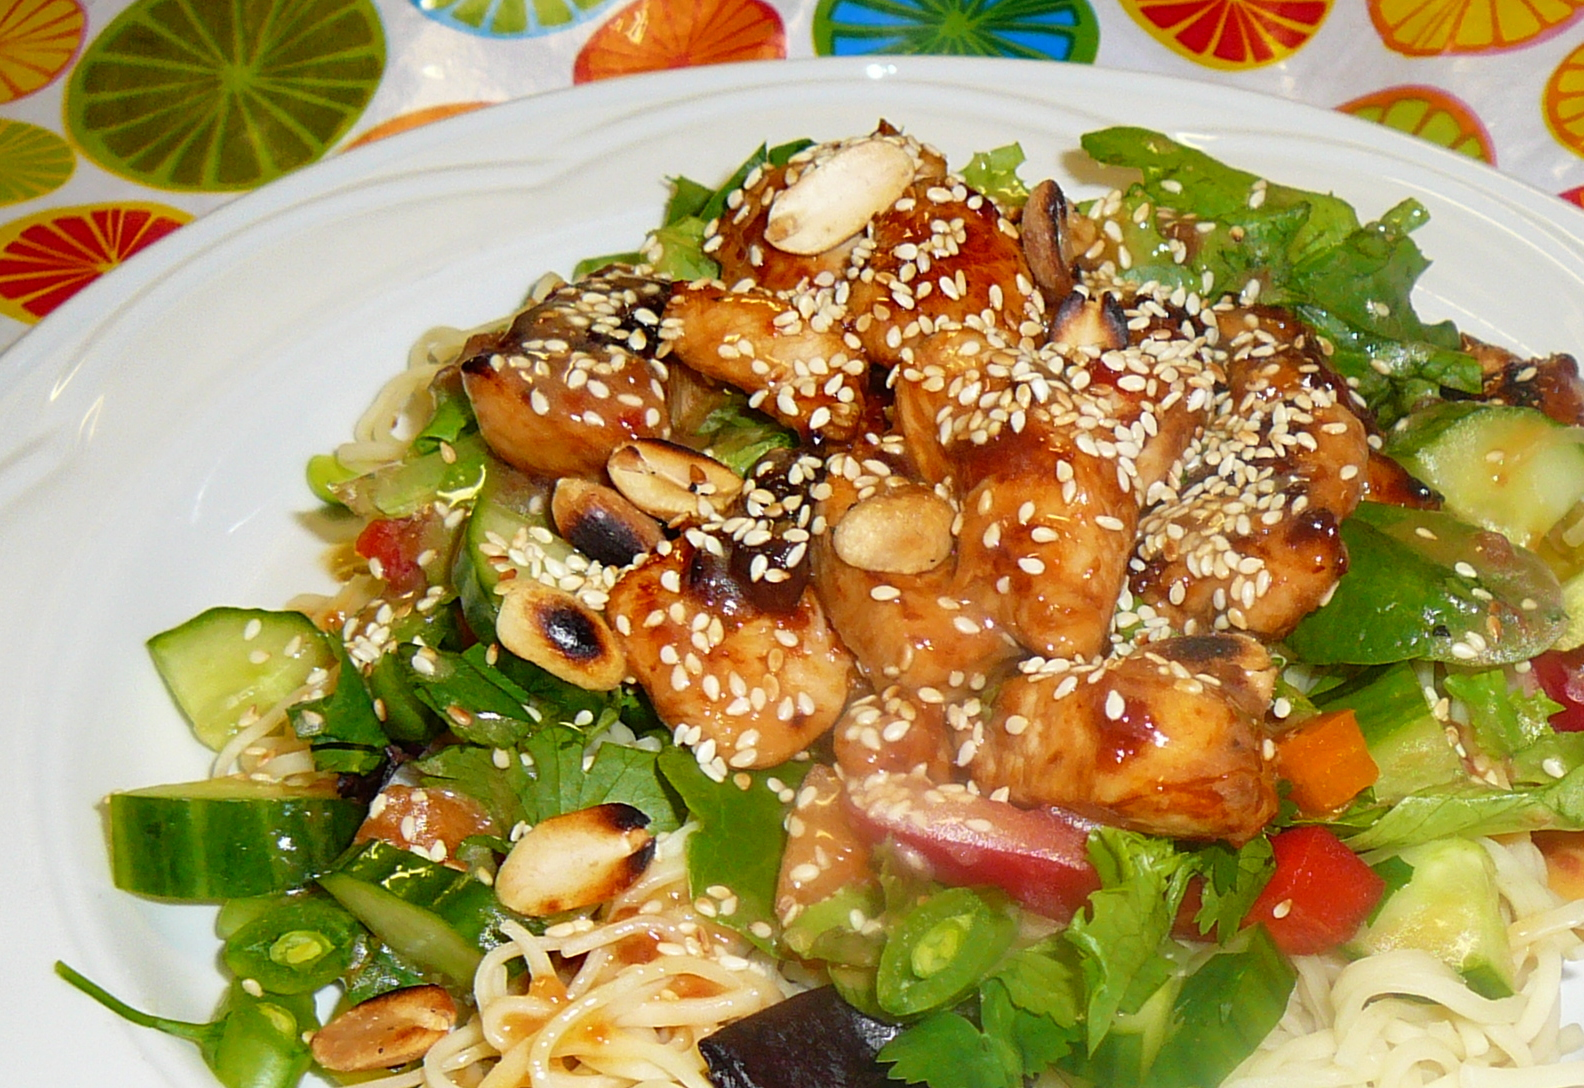 THAI STYLE SWEET AND SPICY CHICKEN SALAD | chattykathychatsandcooks